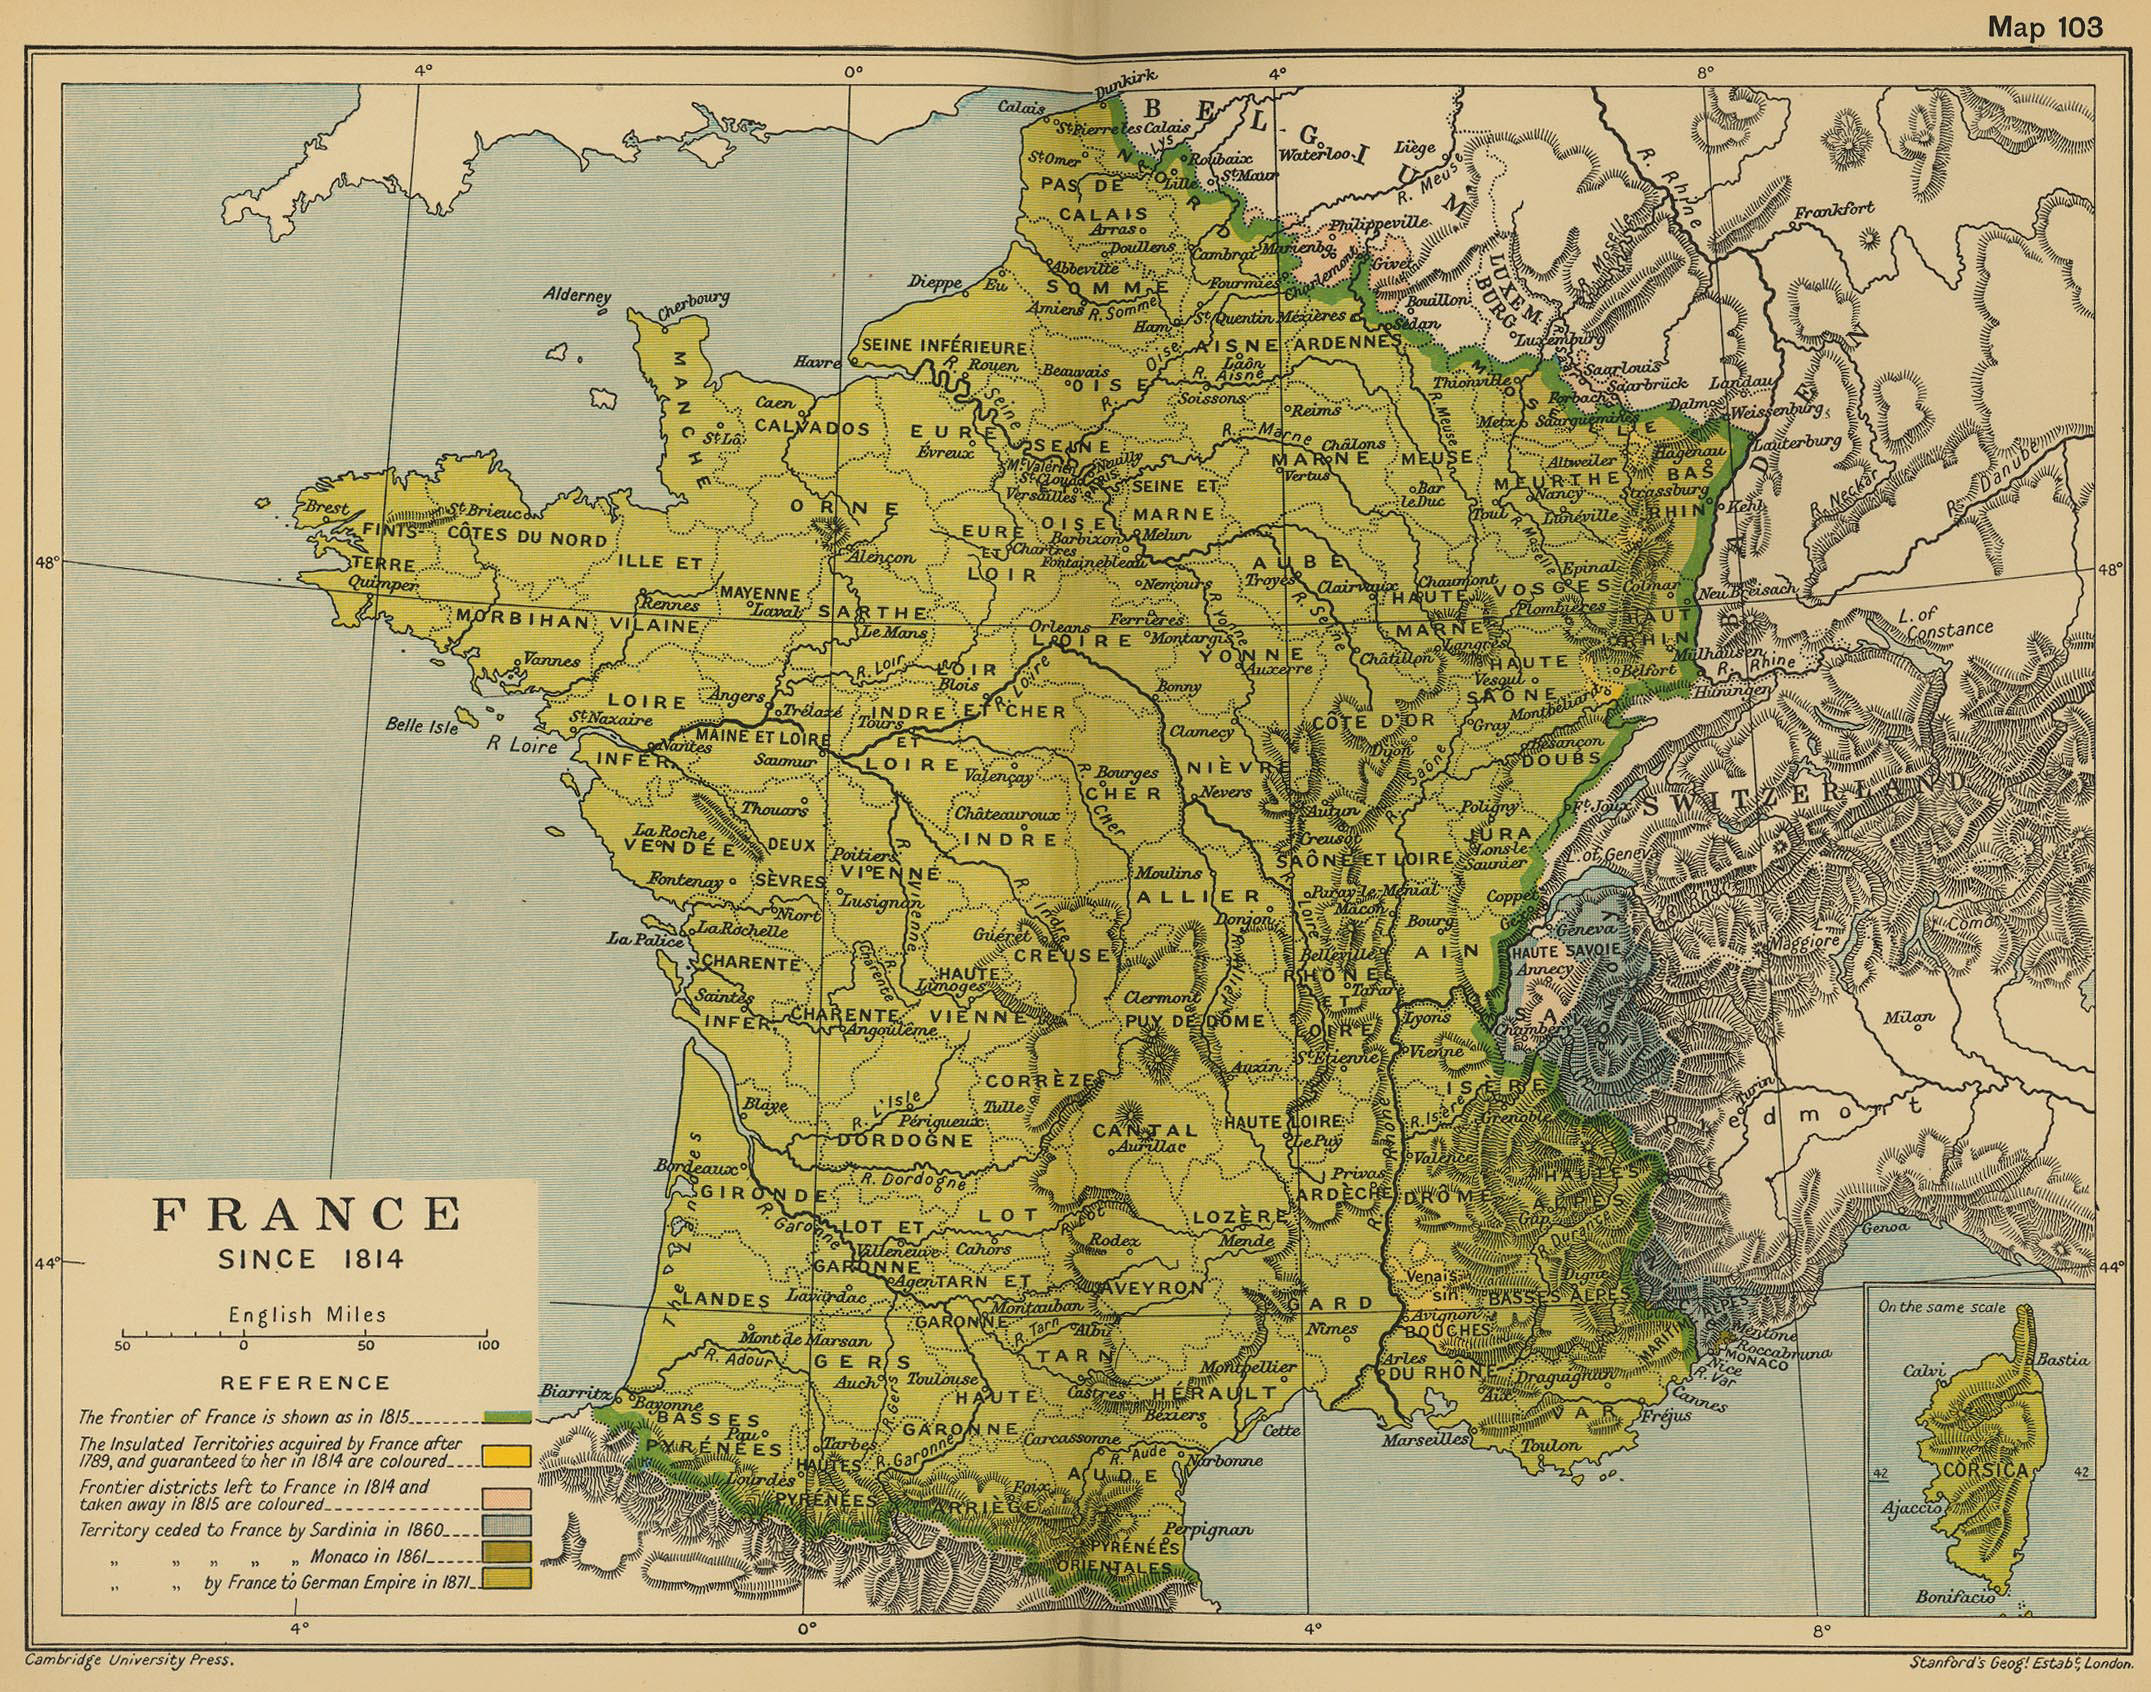 Map of France since 1814